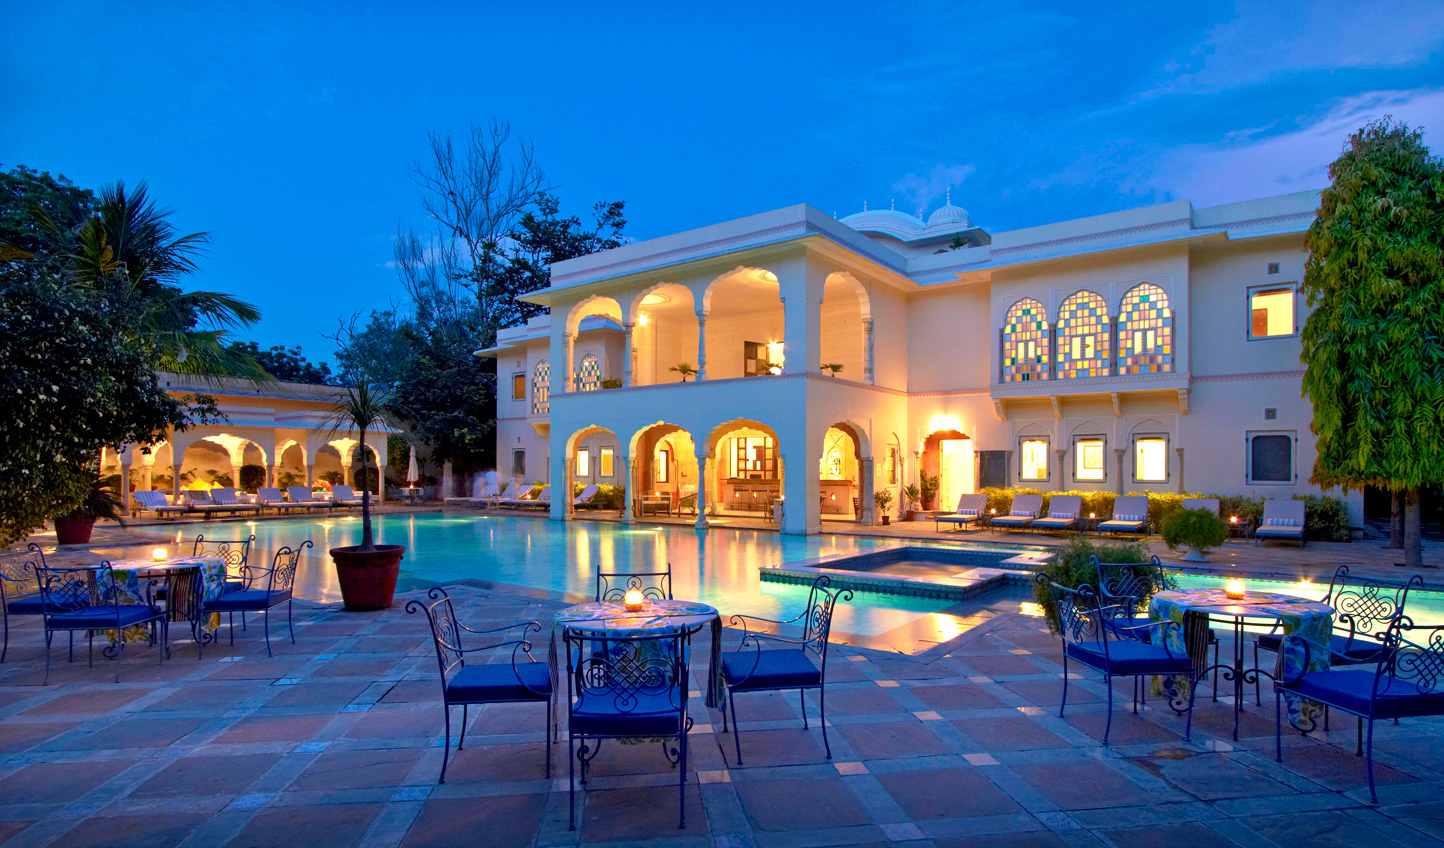 A place of tranquility and elegance